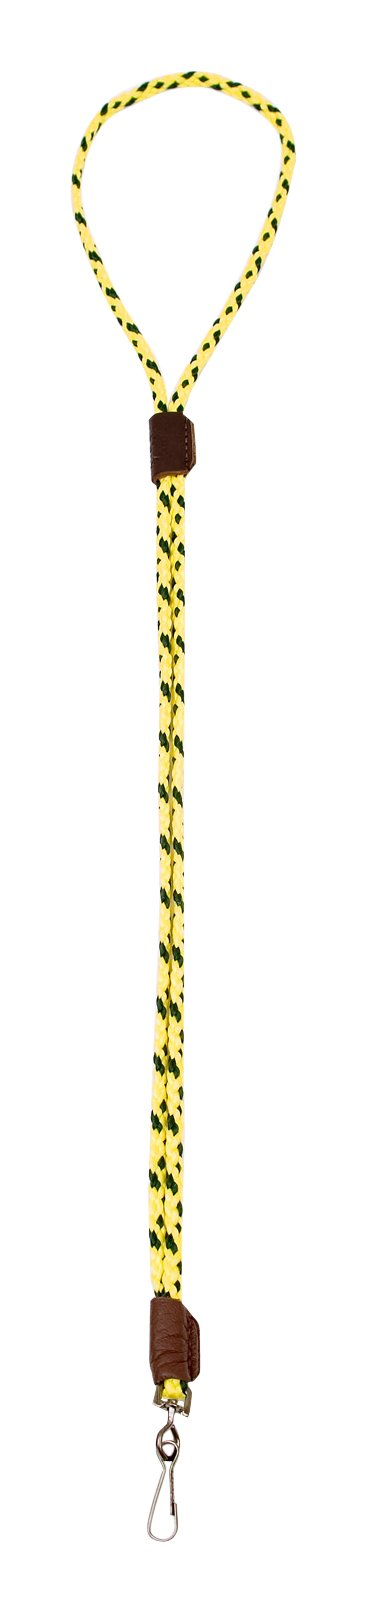 Mendota Pet Single Lanyard Whistle, 1/8 by 25-Inch, Hi Viz Yellow